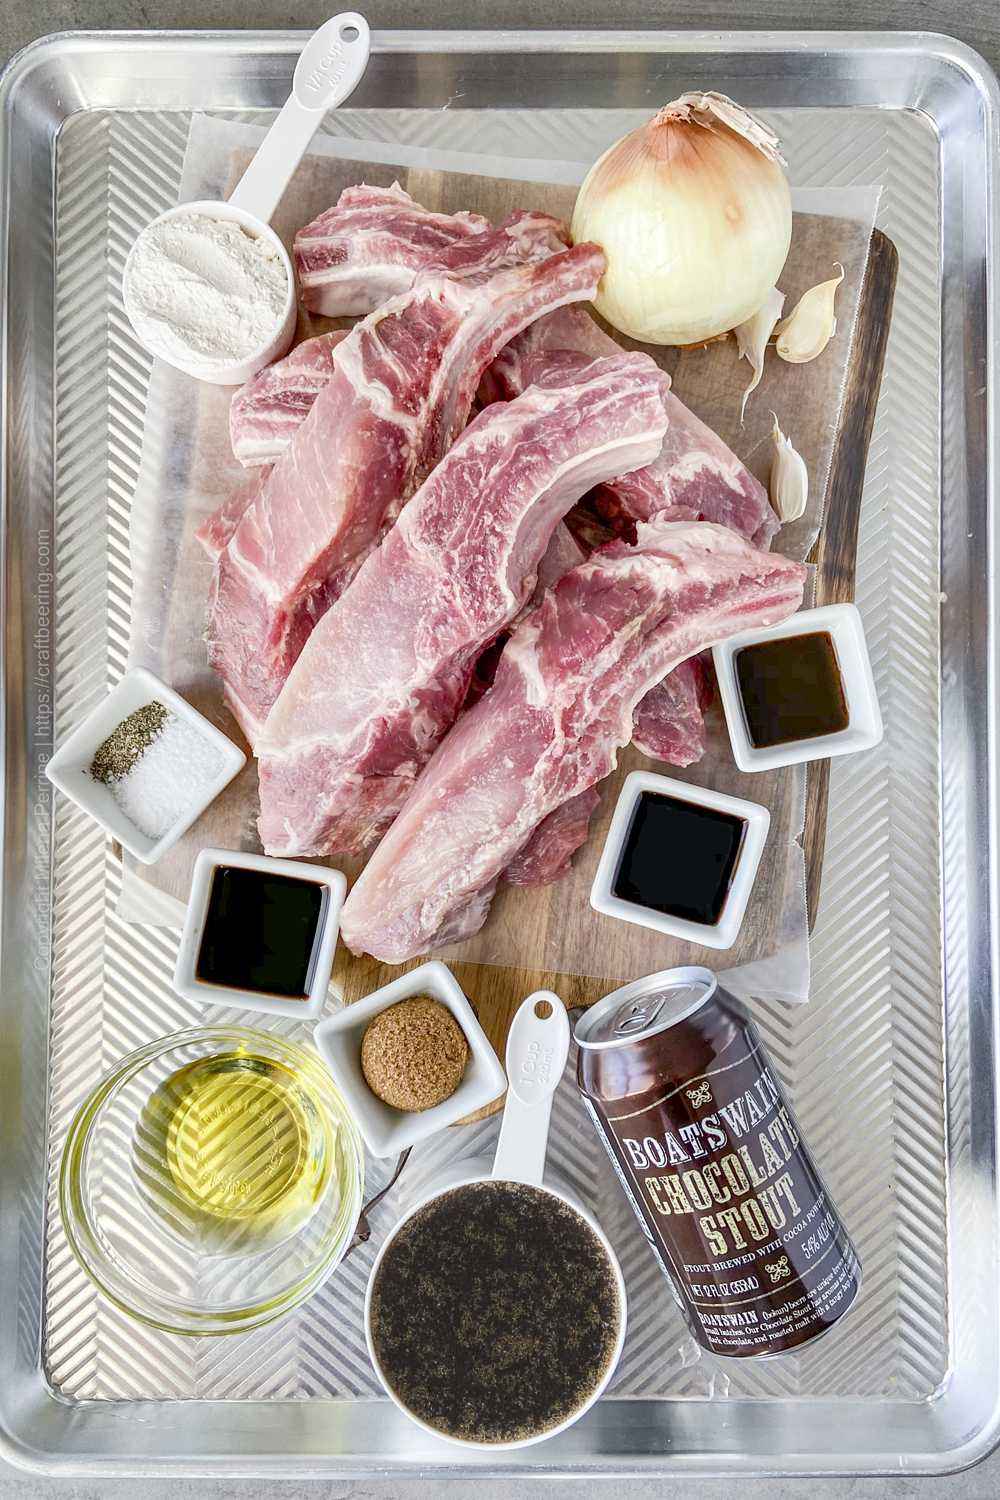 Raw country style ribs (bone-in) and other ingredients needed to braise them.